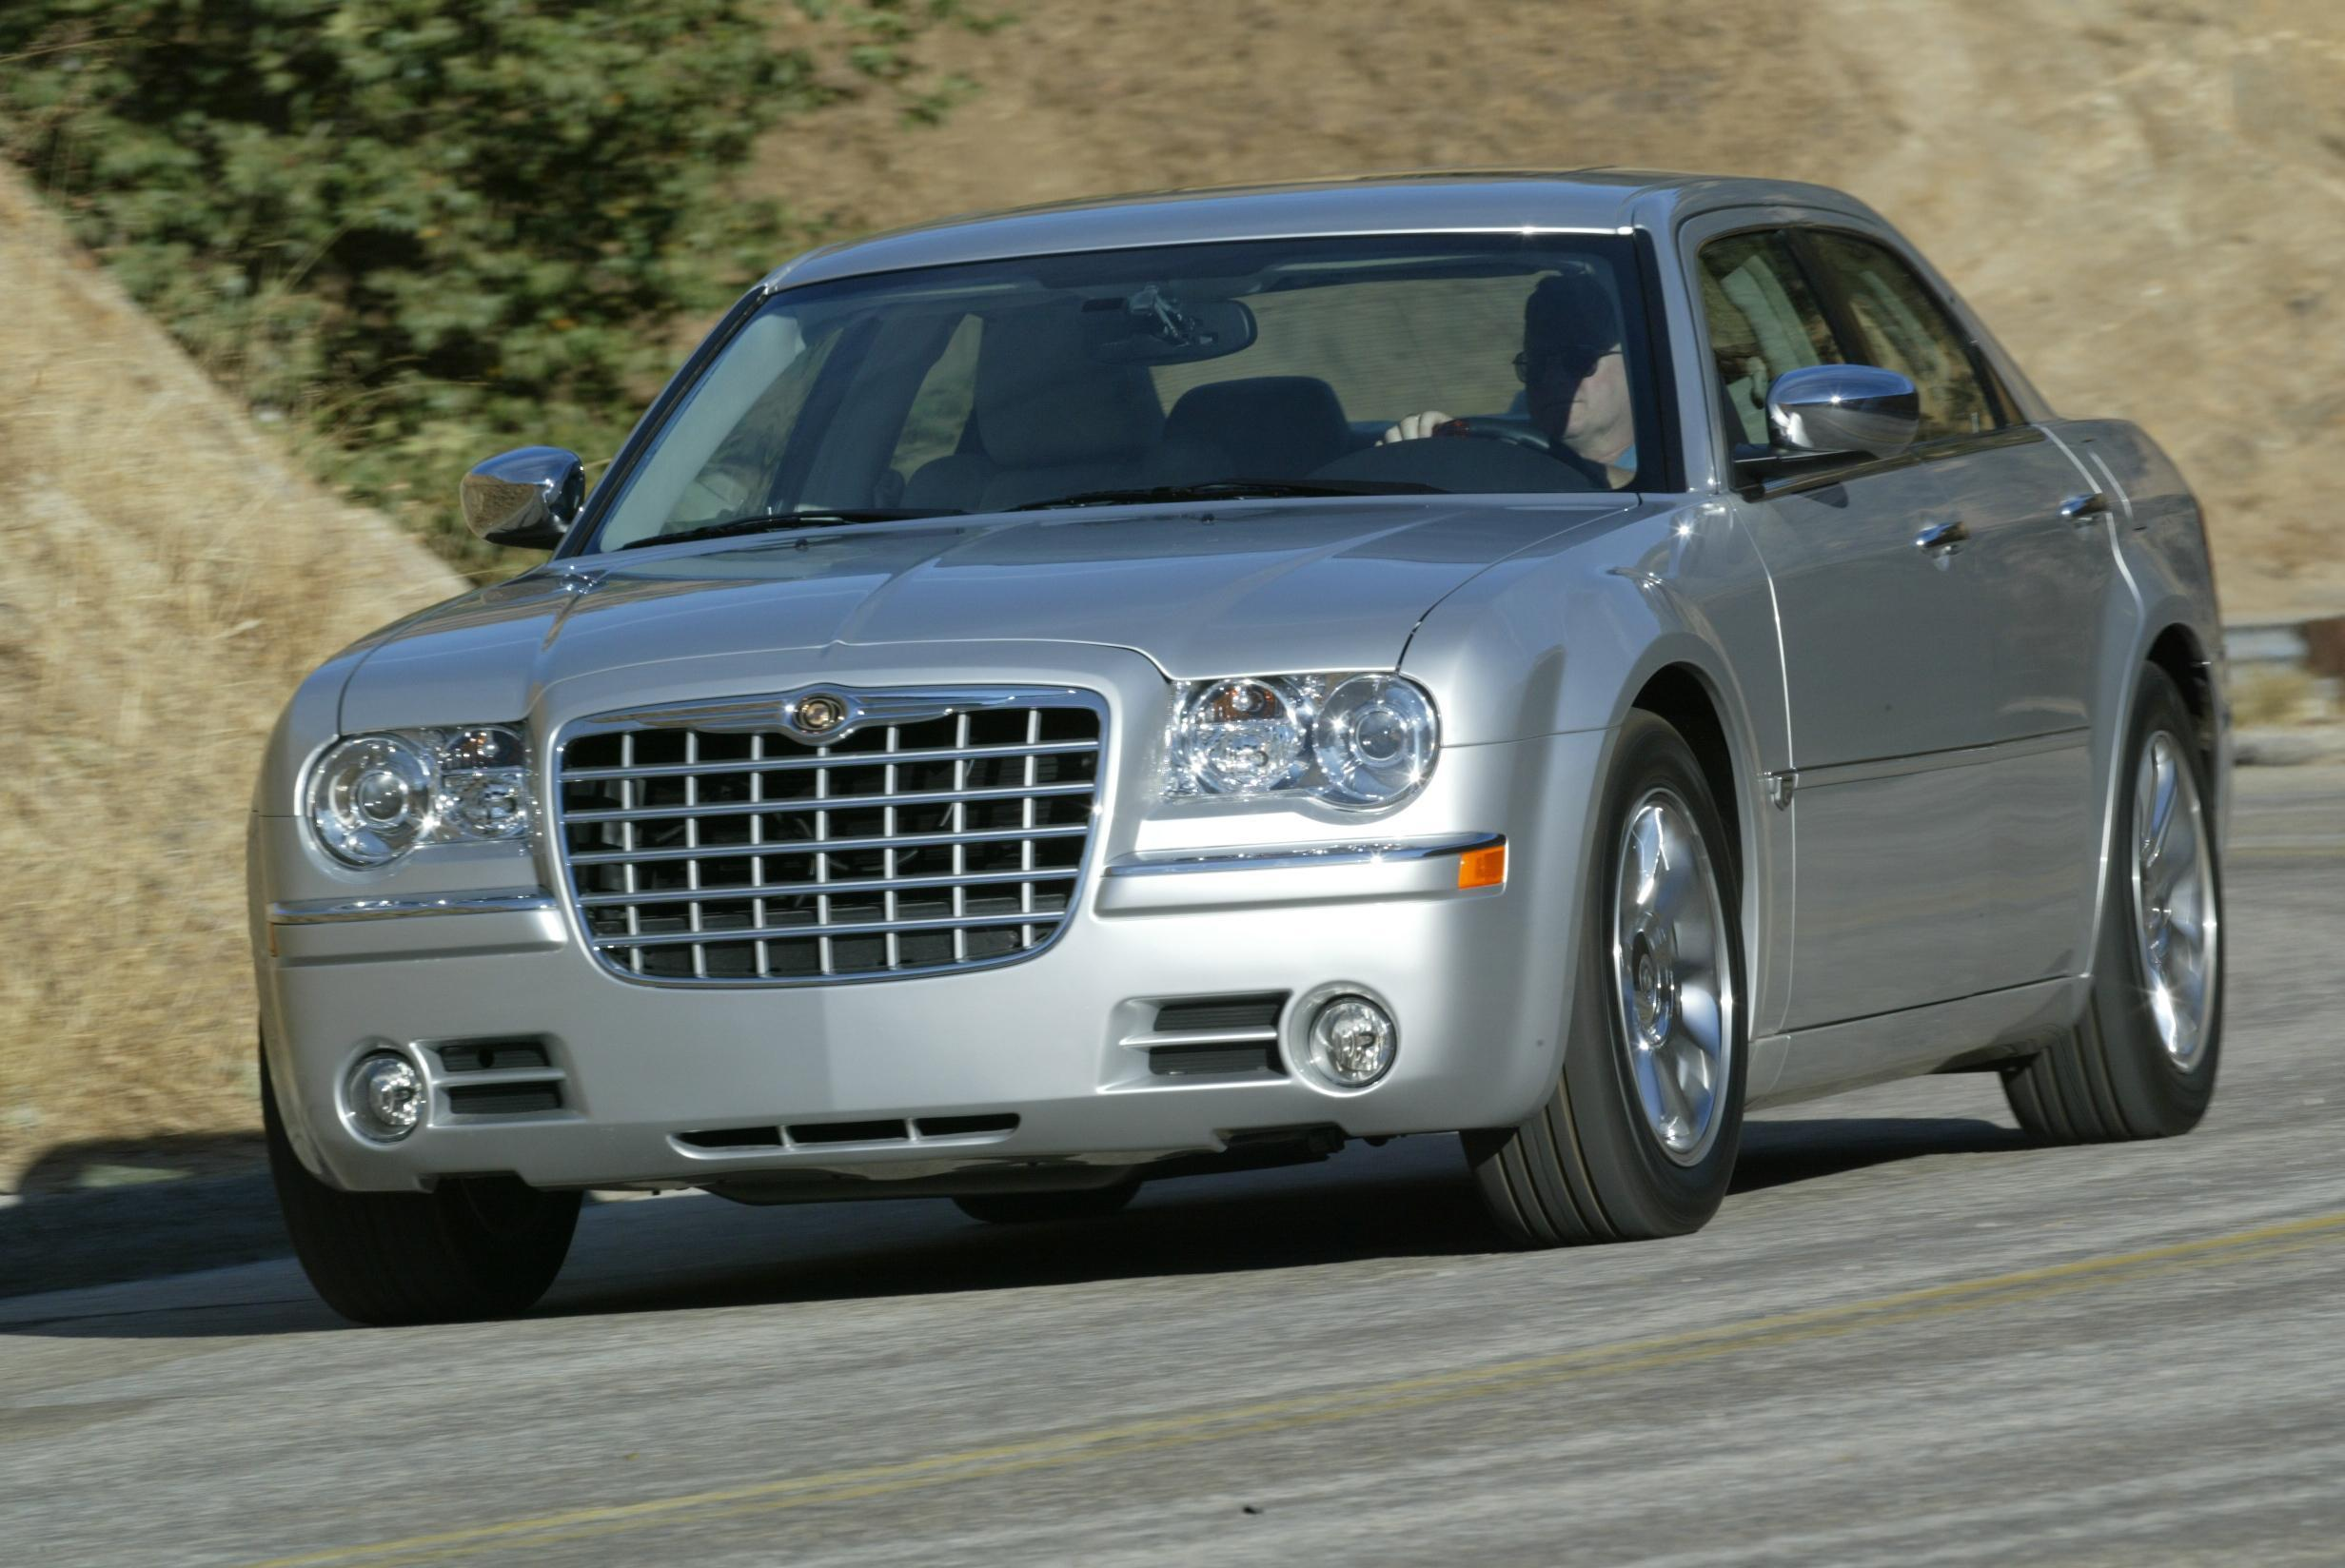 2005 Chrysler 300C | Top Speed. »